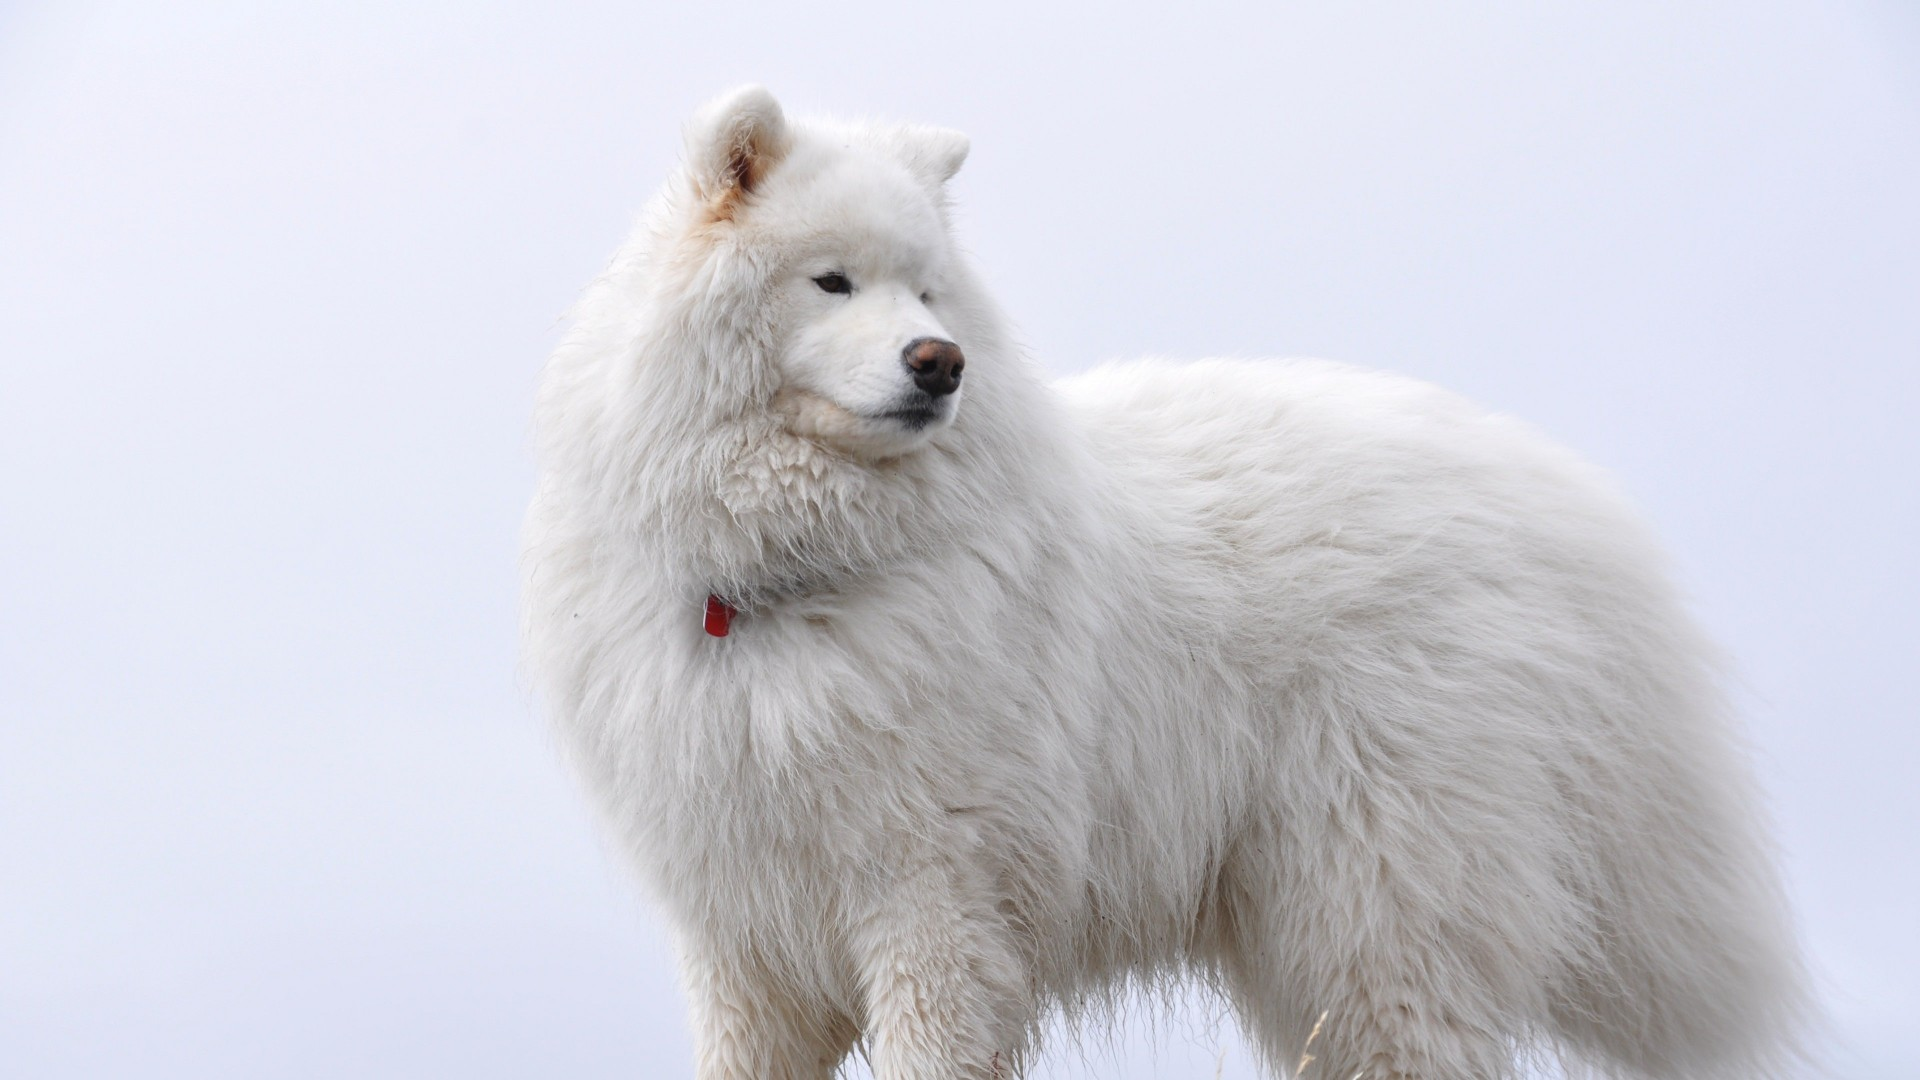 Big White Fluffy Samoyed Wallpaper for Desktop 1920x1080